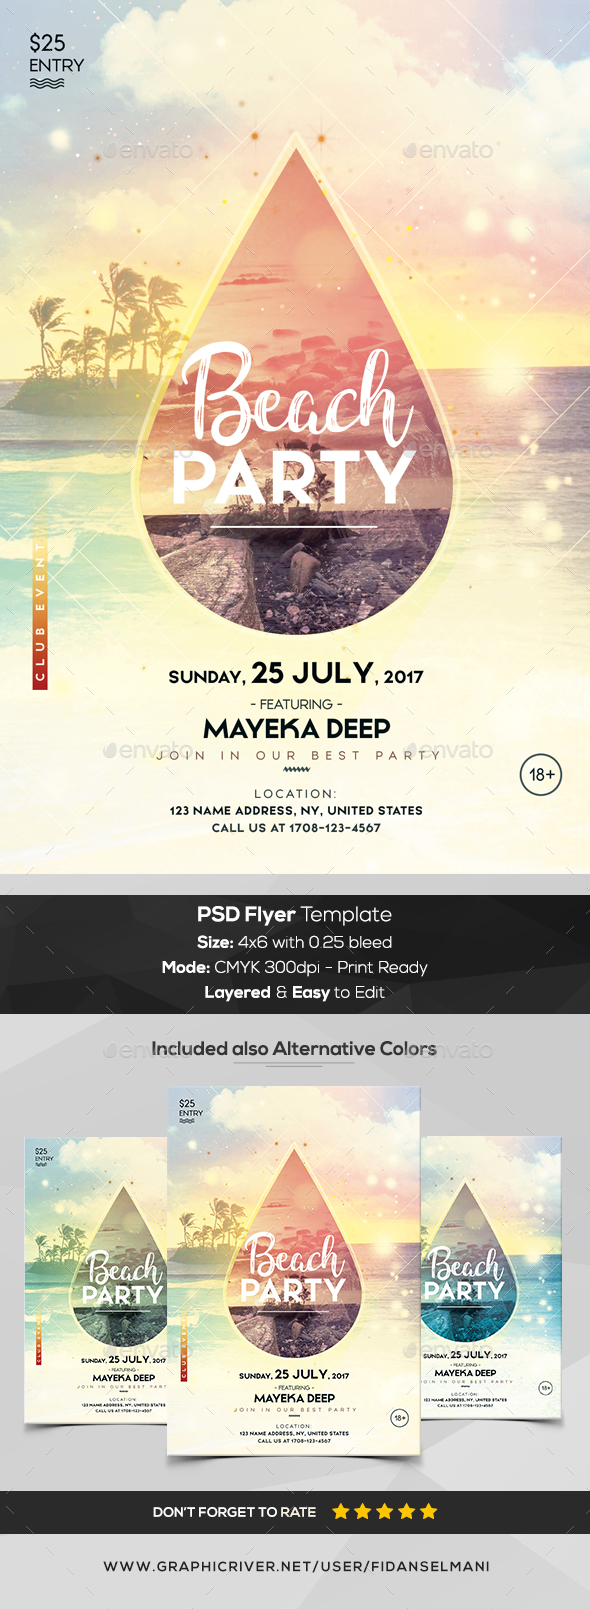 Beach Party - PSD Flyer Template - Flyers Print Templates